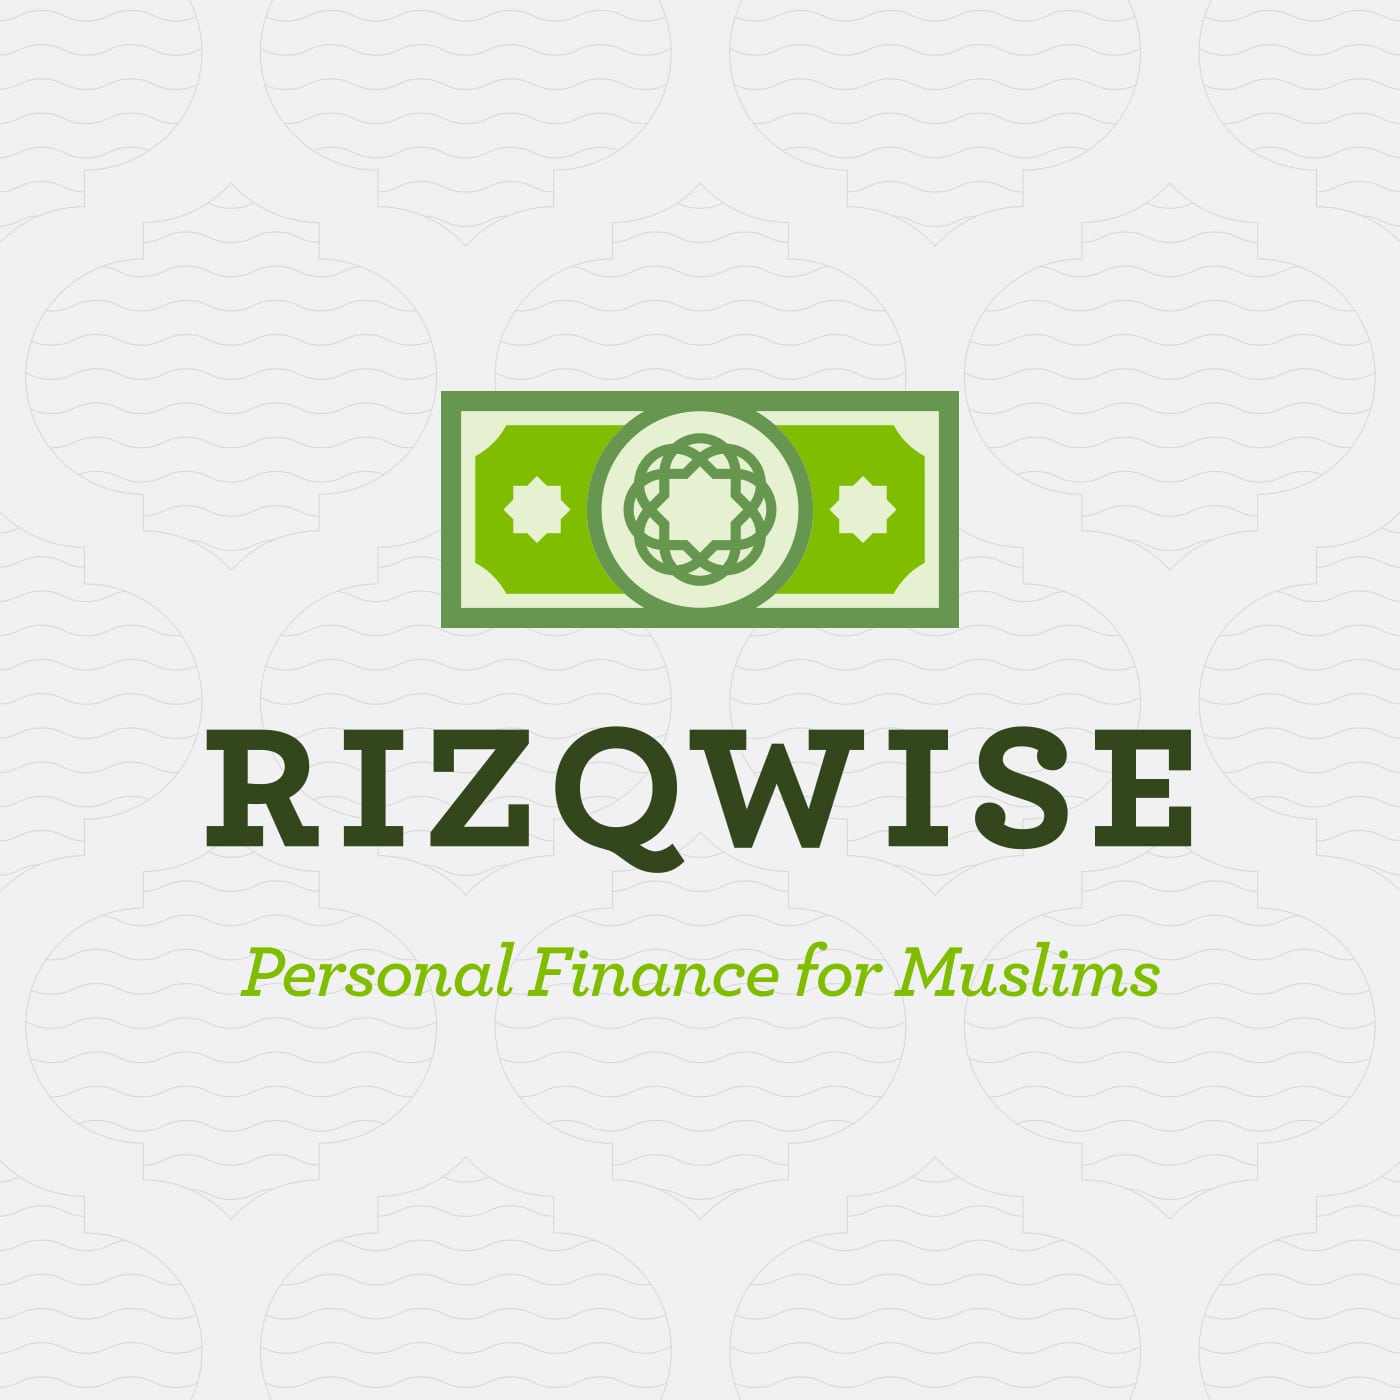 Rizqwise